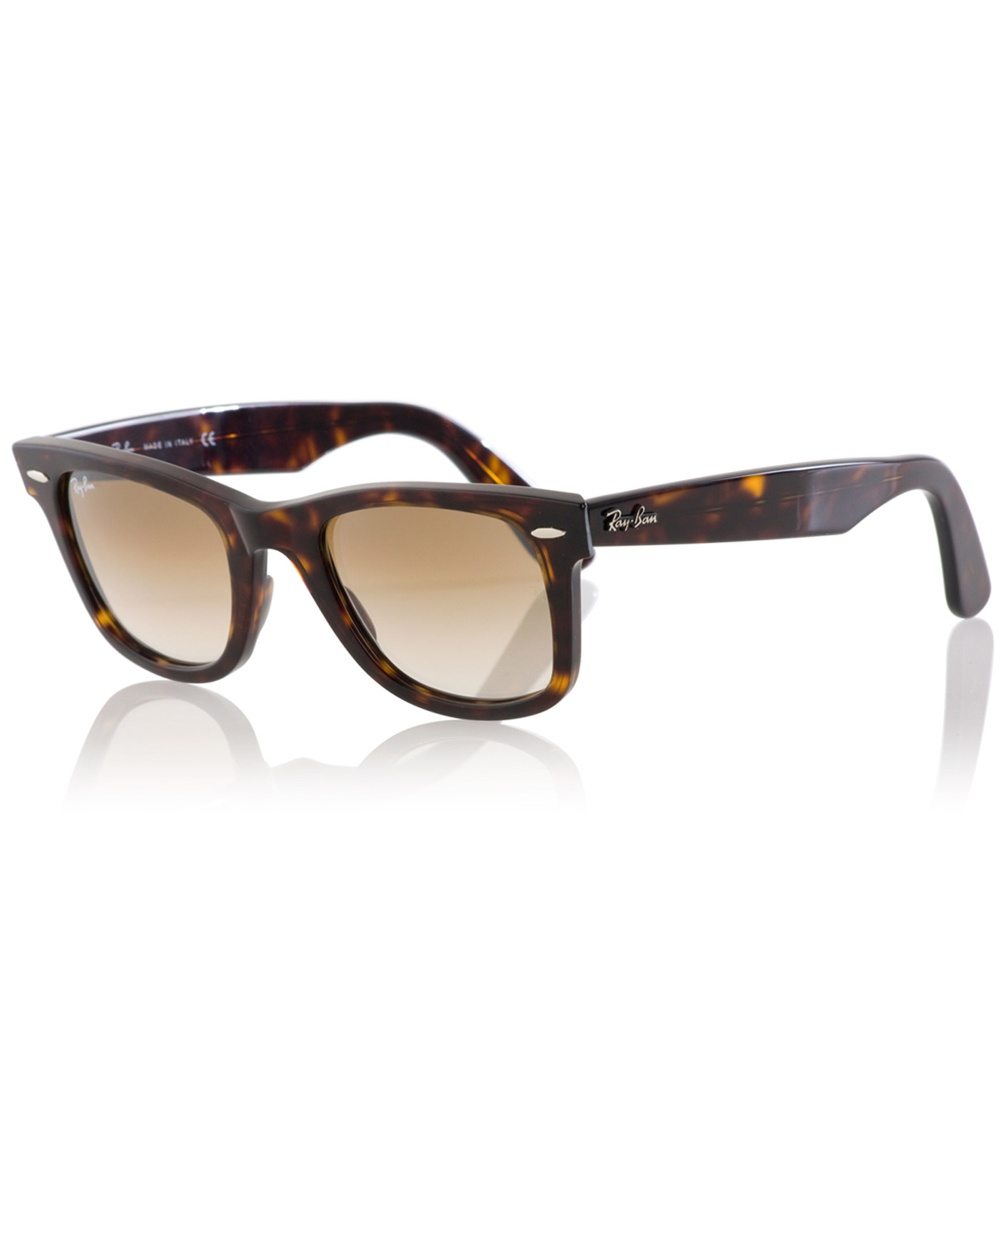 96437cc4e9 ... promo code lyst ray ban wayfarer sunglasses in brown for men 6c1aa ed371